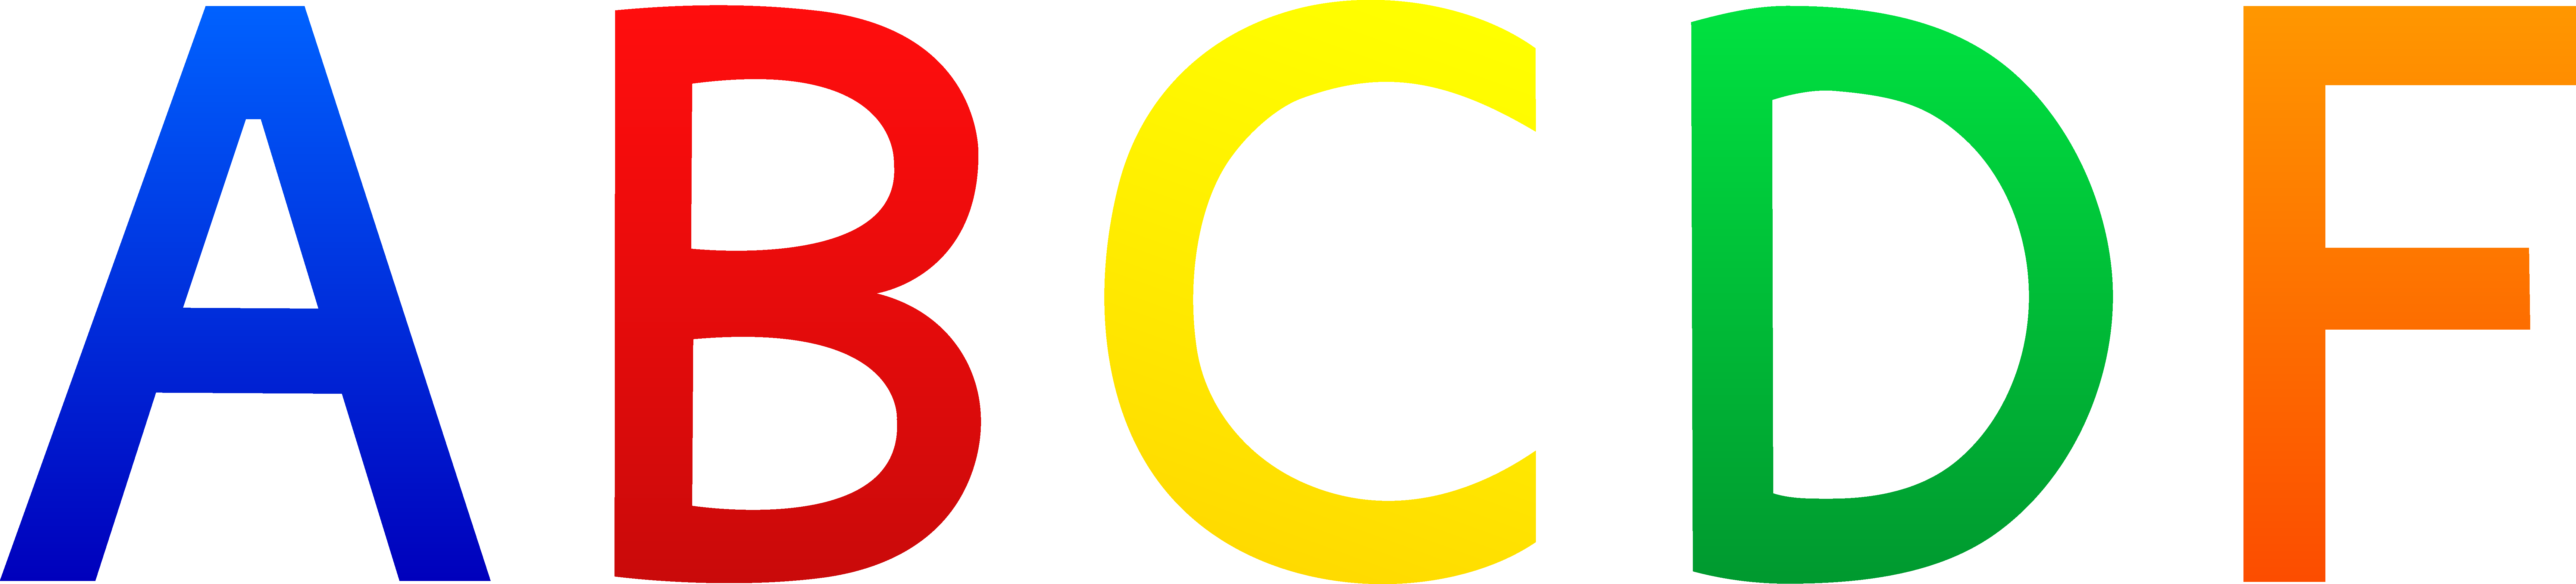 Free Letter Clipart.